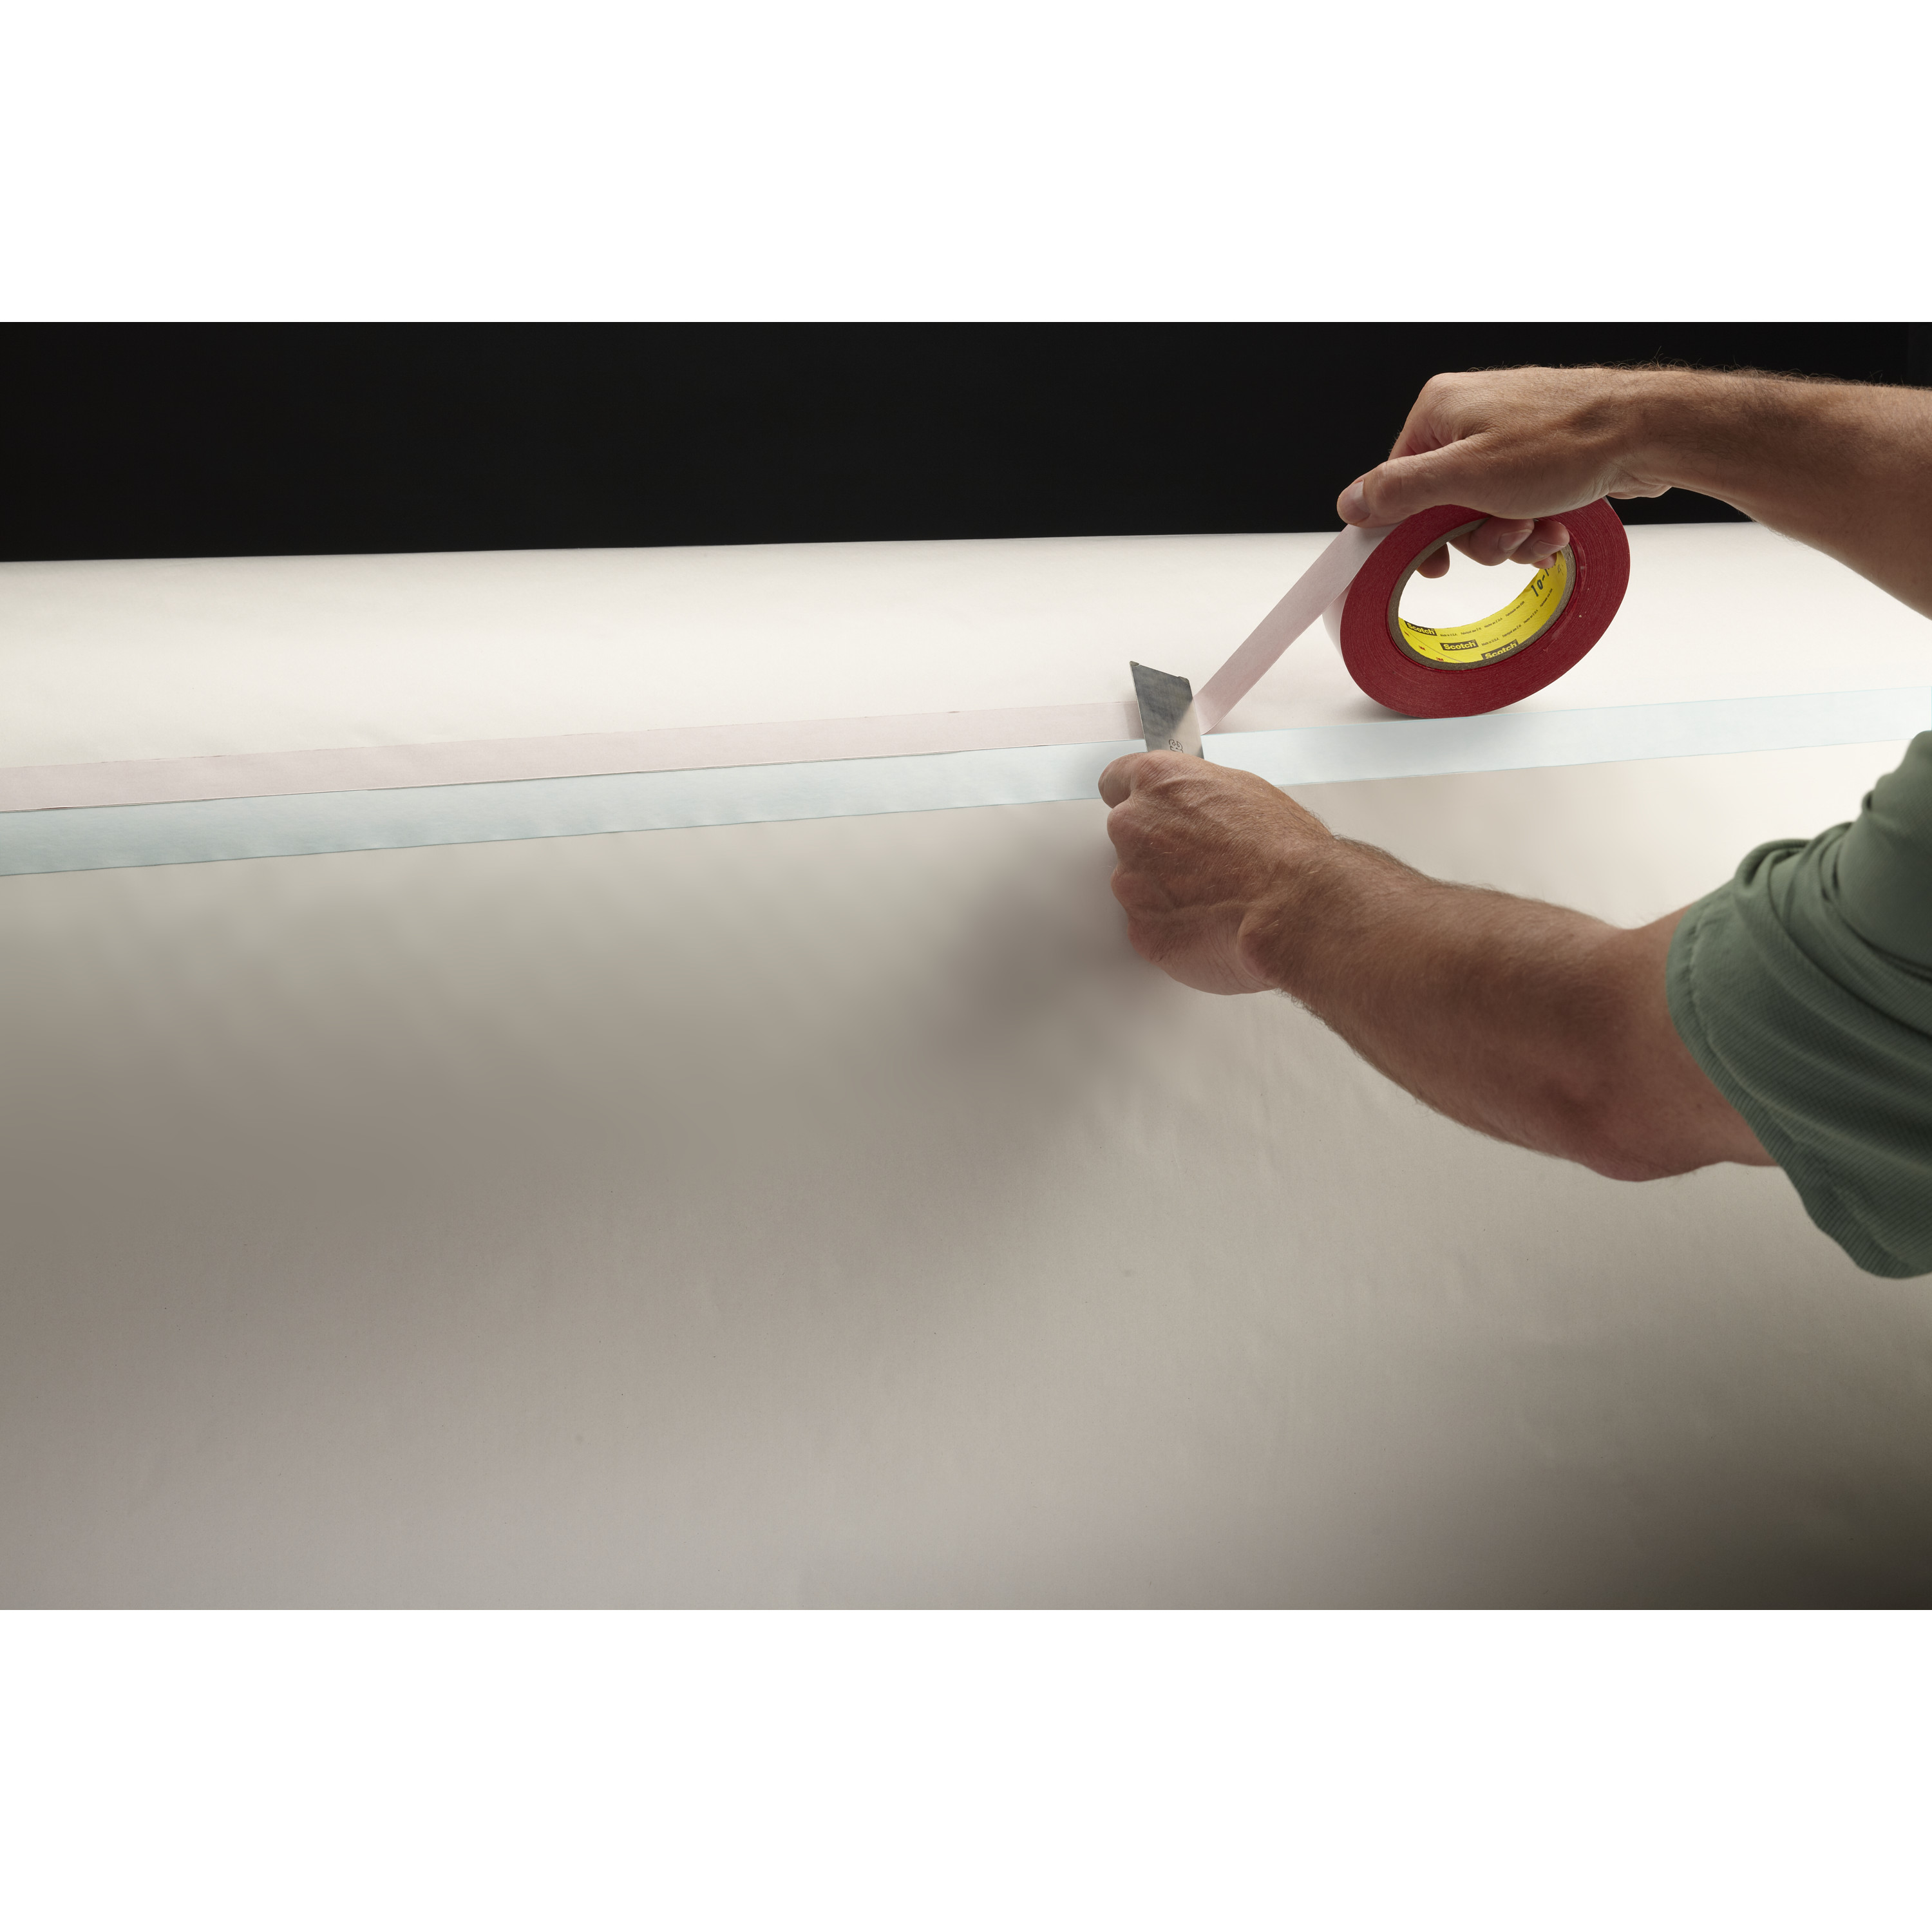 3M™ Double Coated Tape 9738, Clear, 54 in x 60 yd, 4.3 mil, 1 roll per case